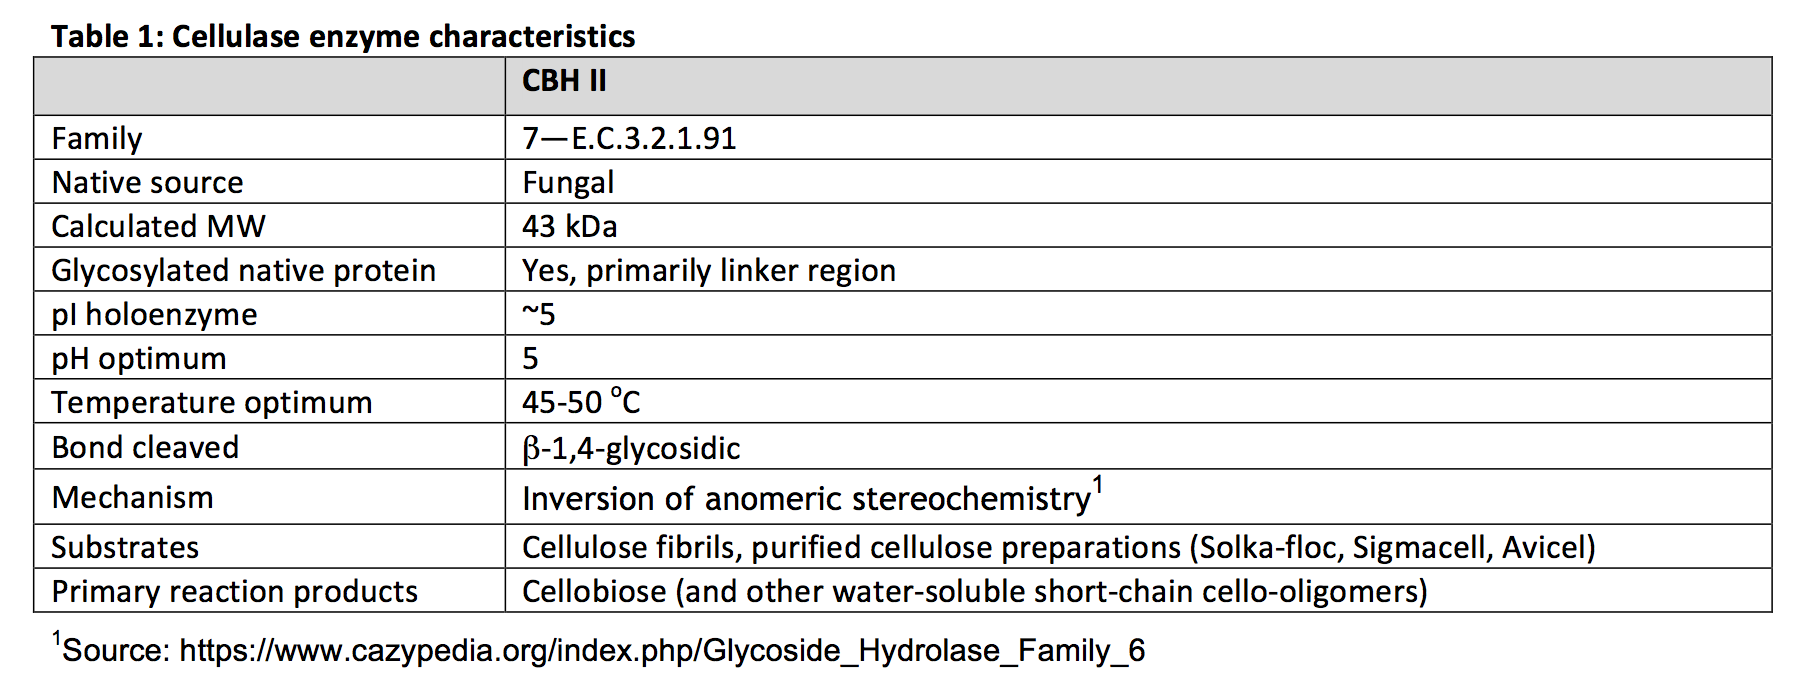 CBH II Cellulase enzyme characteristics